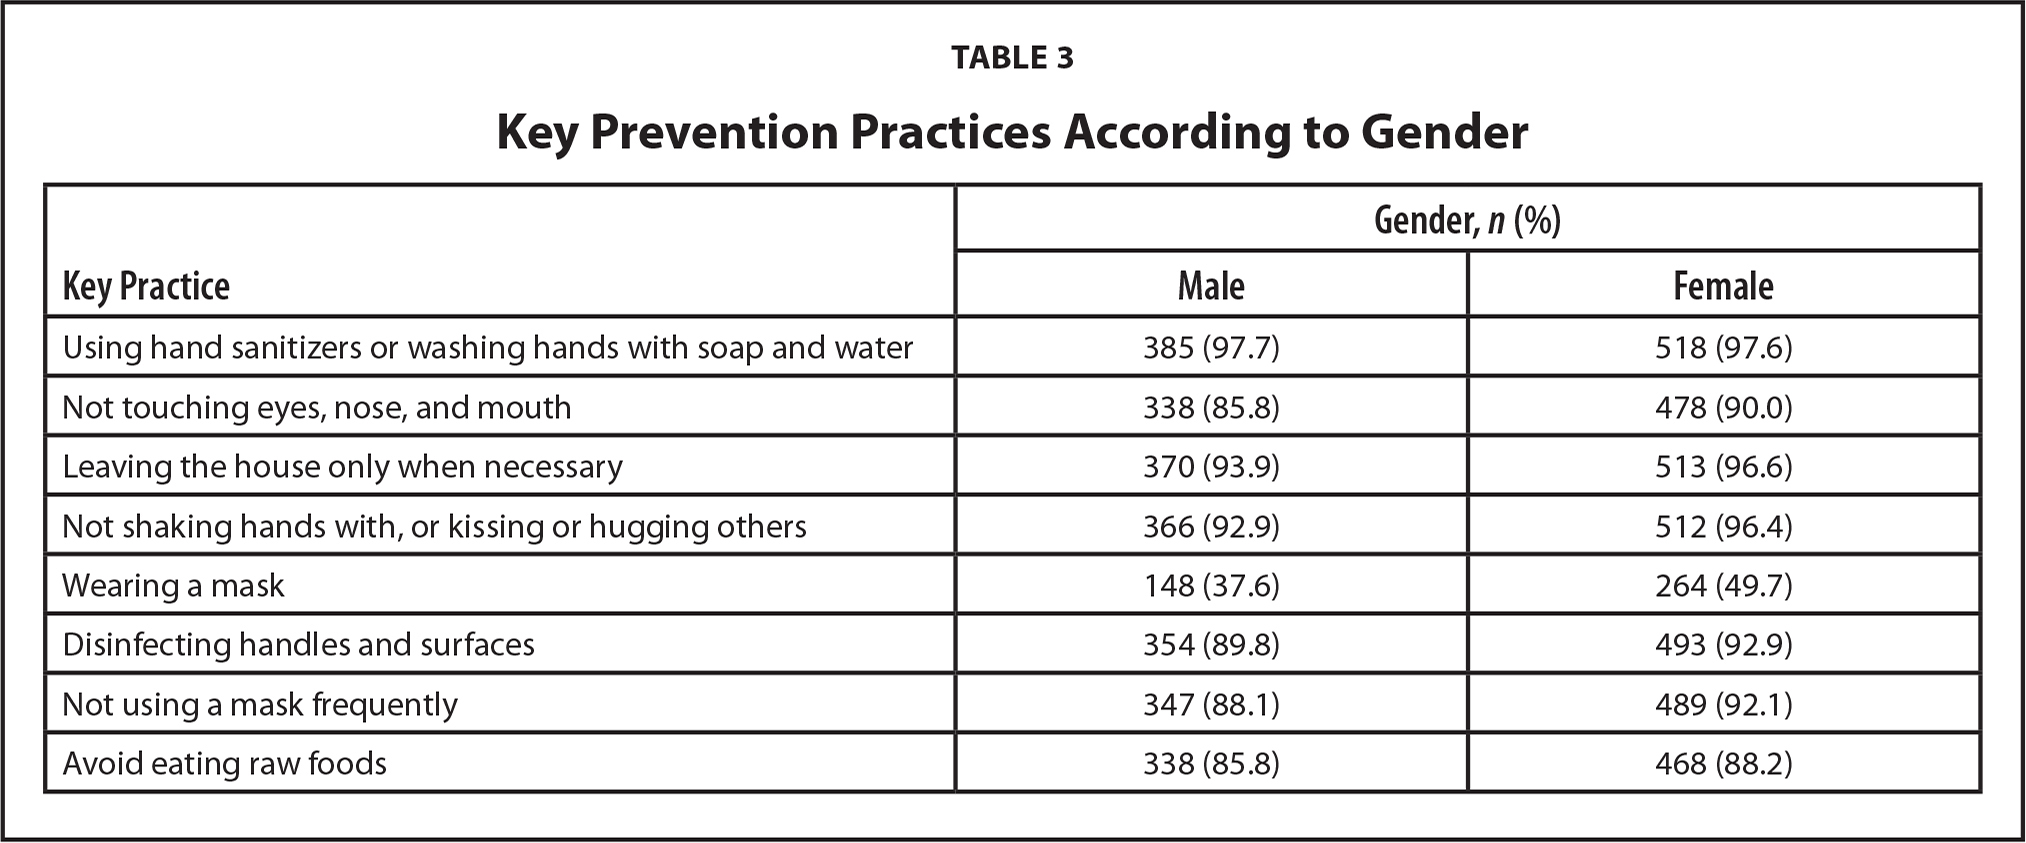 Key Prevention Practices According to Gender